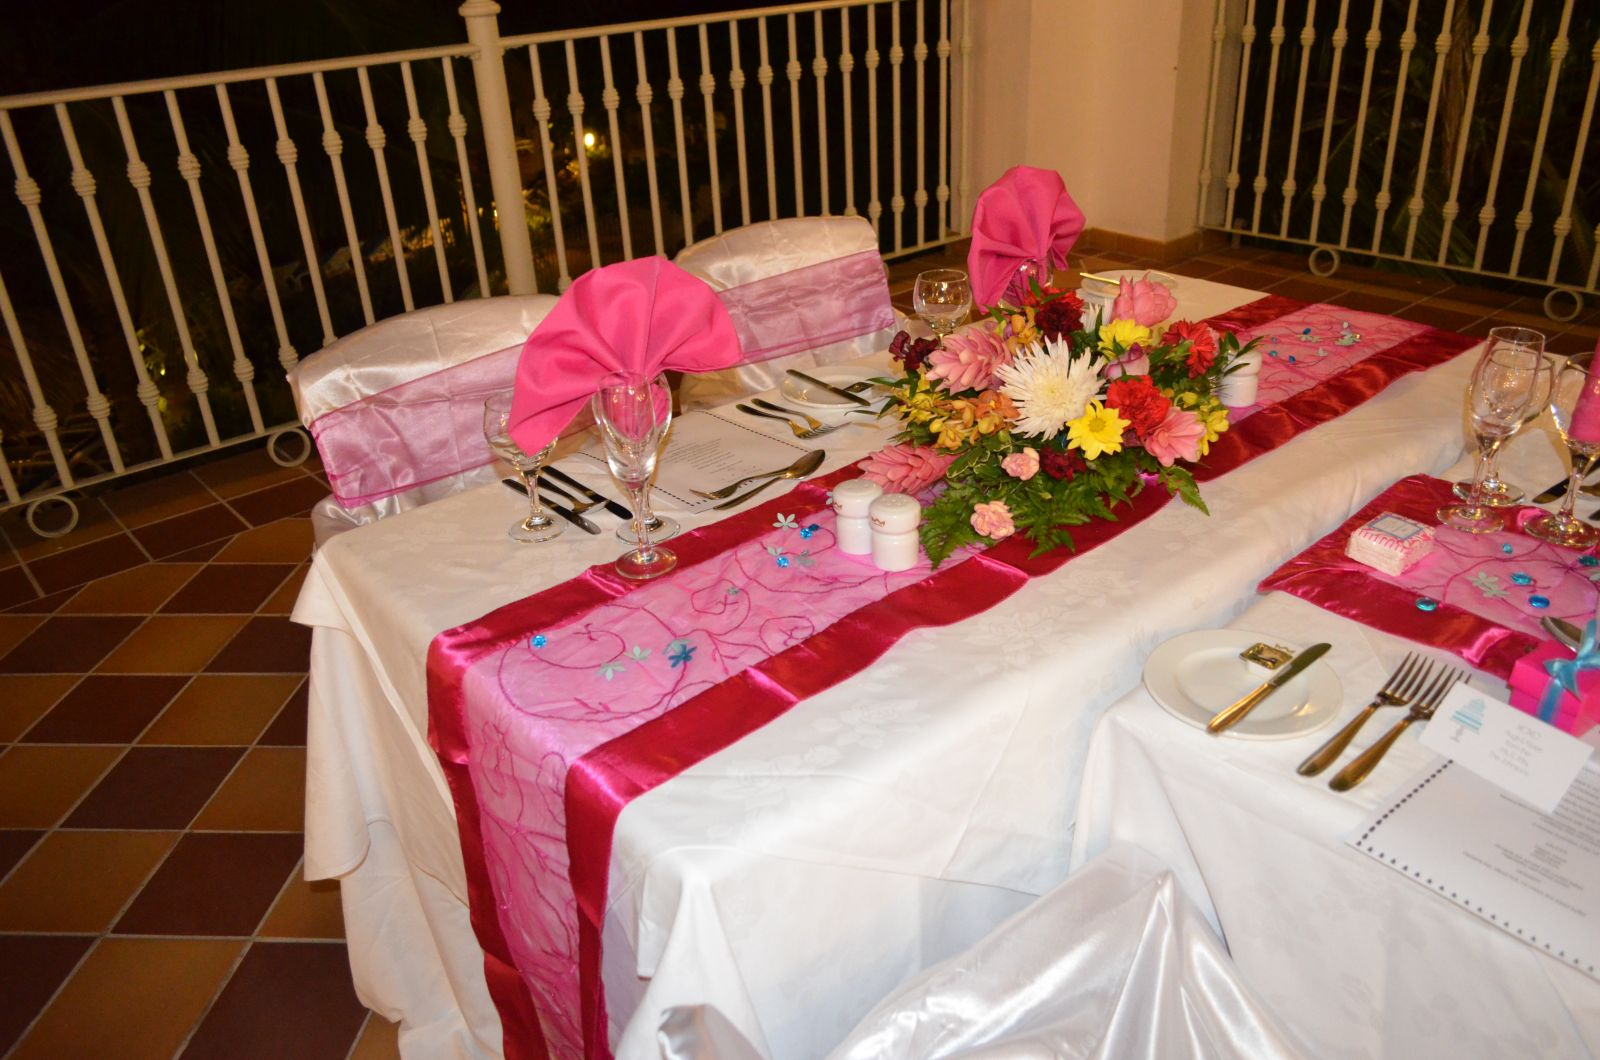 sweetheart table at end of long table